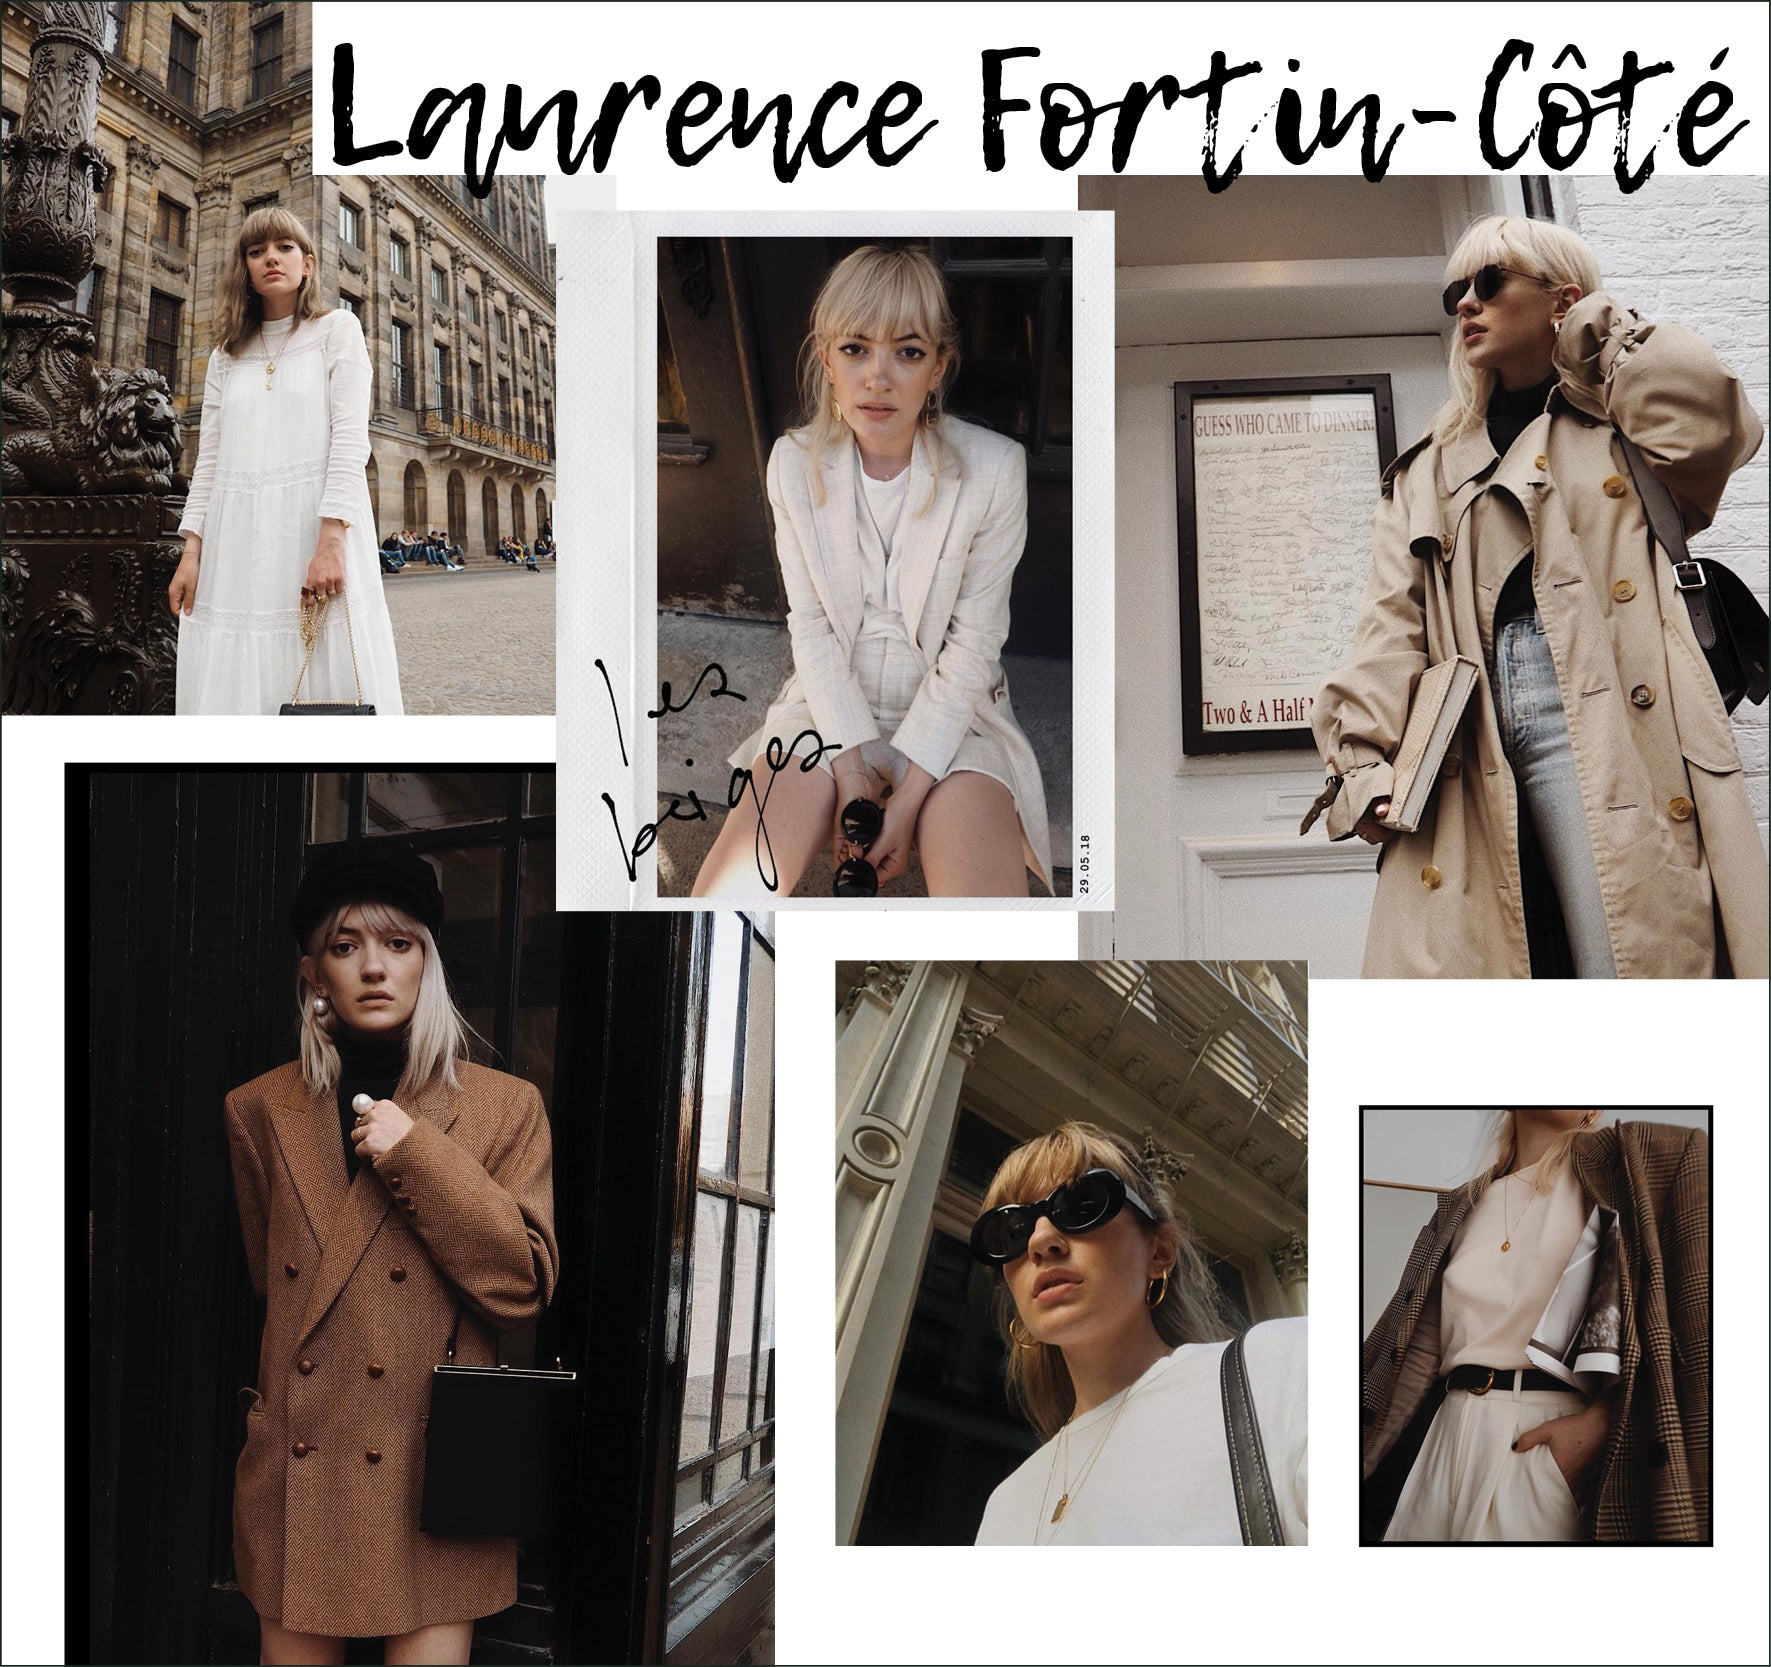 Laurence Fortin-Côté - Instagram feed trulylaur - Collage of images for Style Muse Influencer featured in OwnMuse